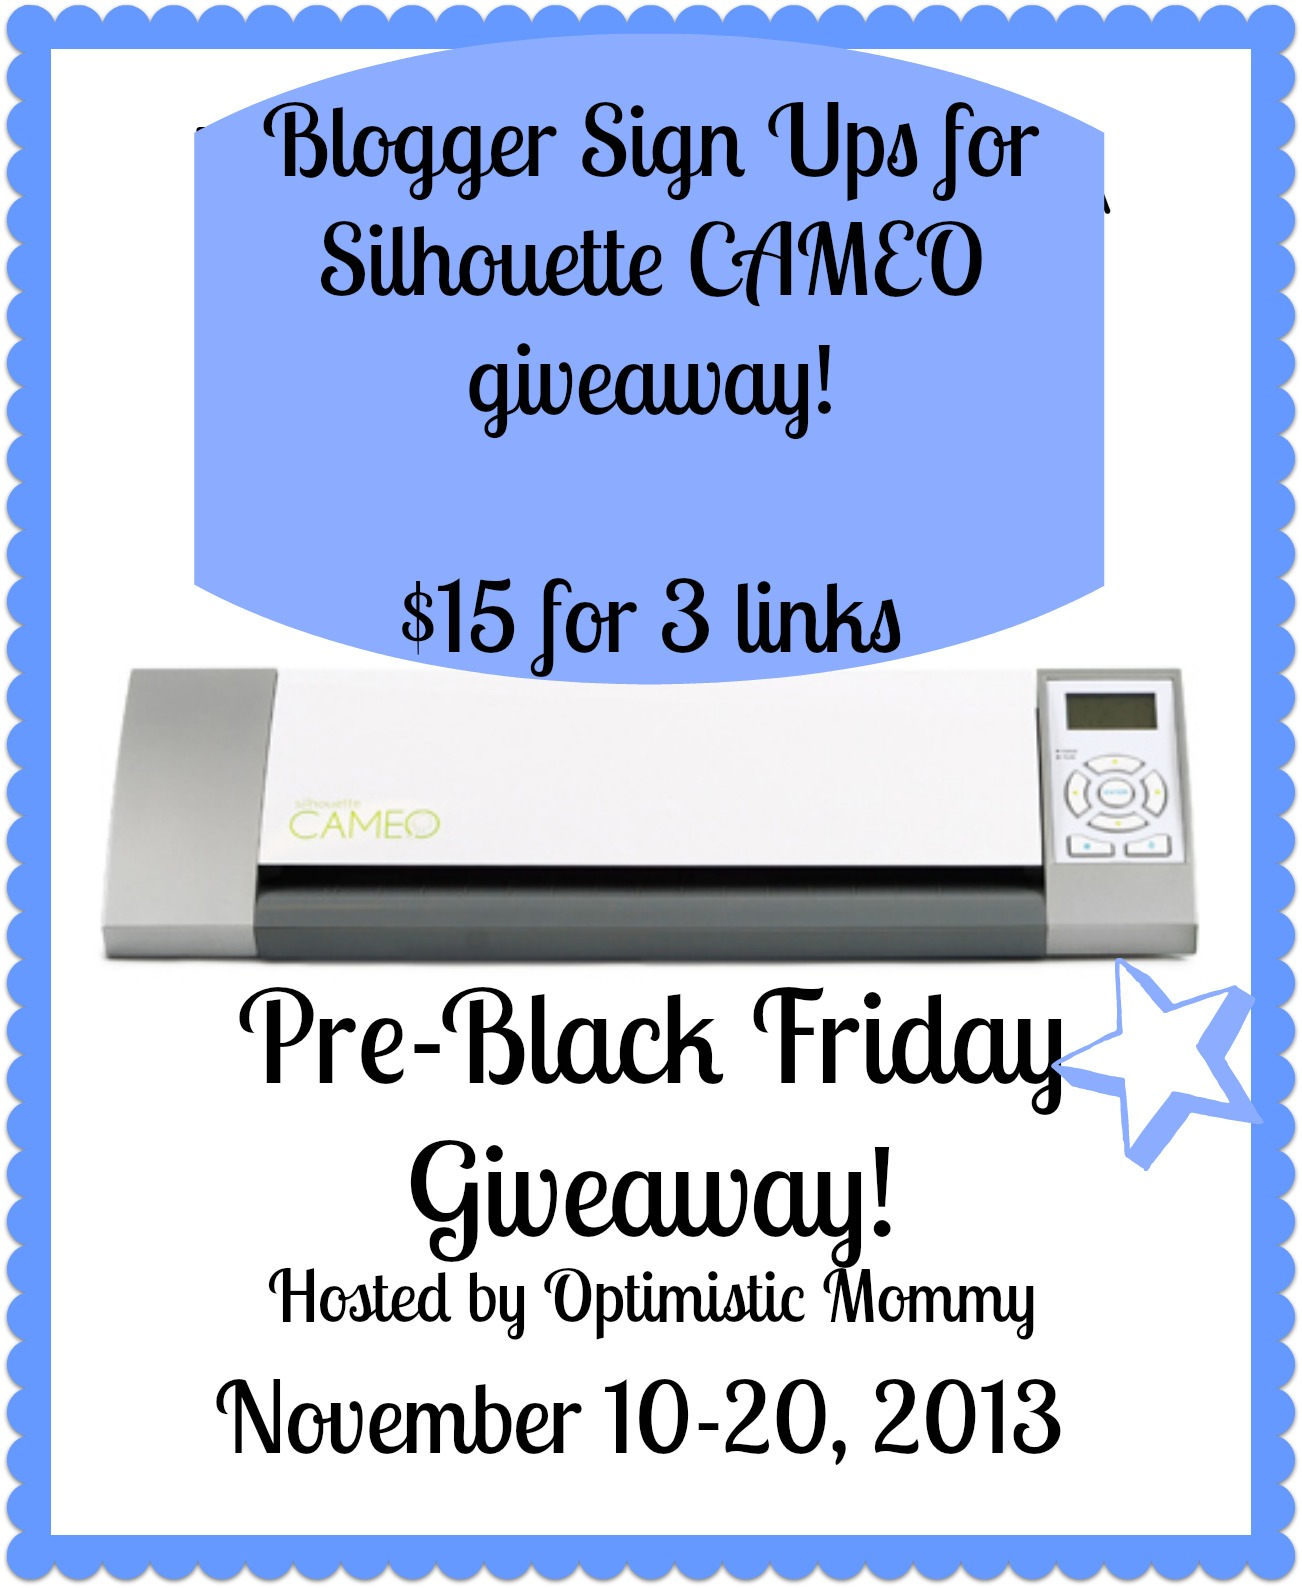 Blogger Opportunity: Pre-Black Friday Silhouette CAMEO Giveaway!  Just $15 for 3 links! #BloggerOpportunity